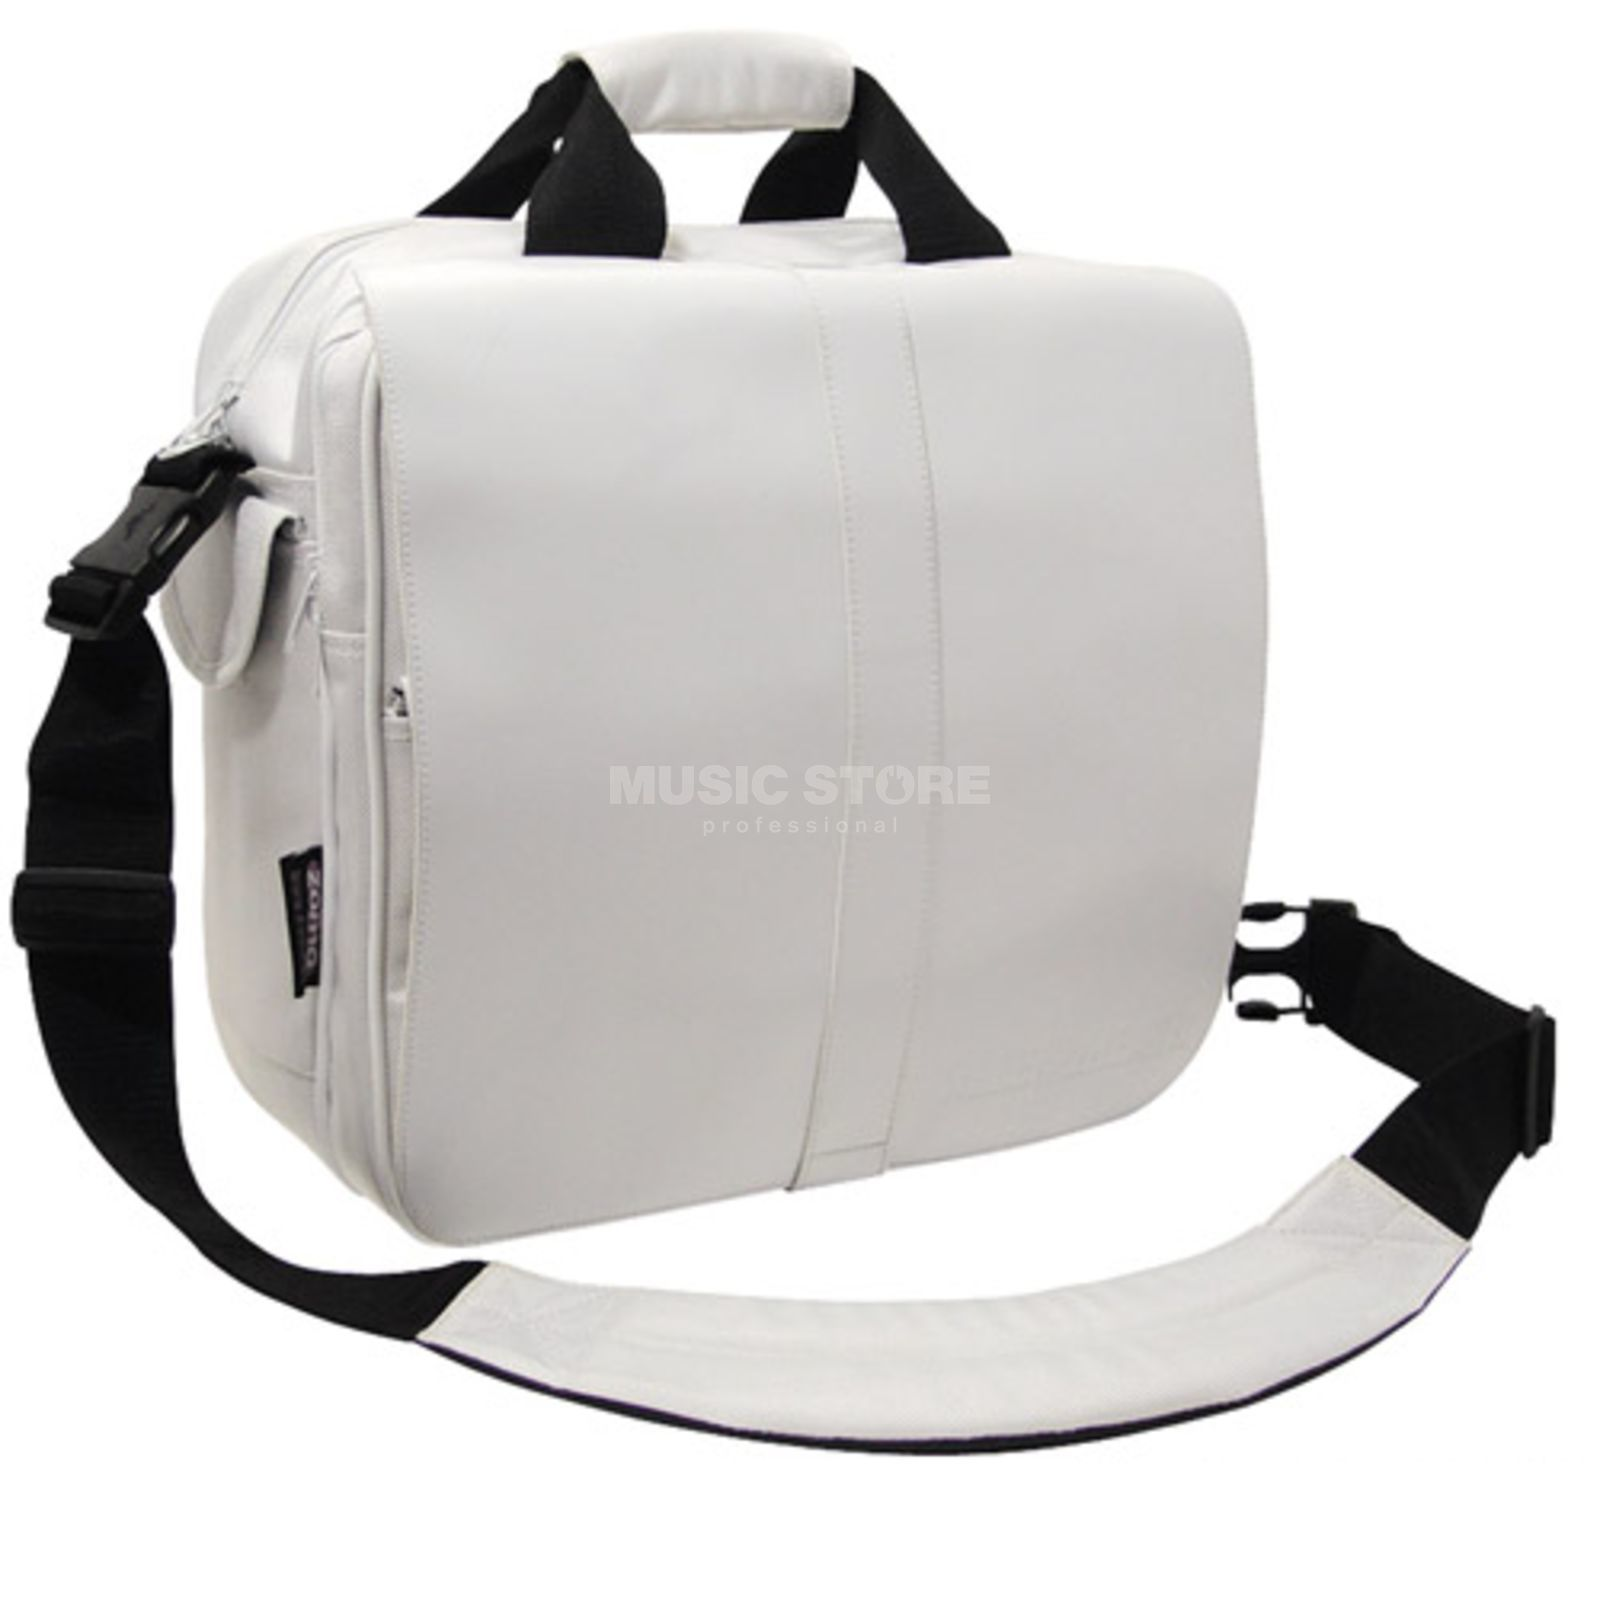 Zomo Digital DJ-Bag White for Allen&Heath Immagine prodotto